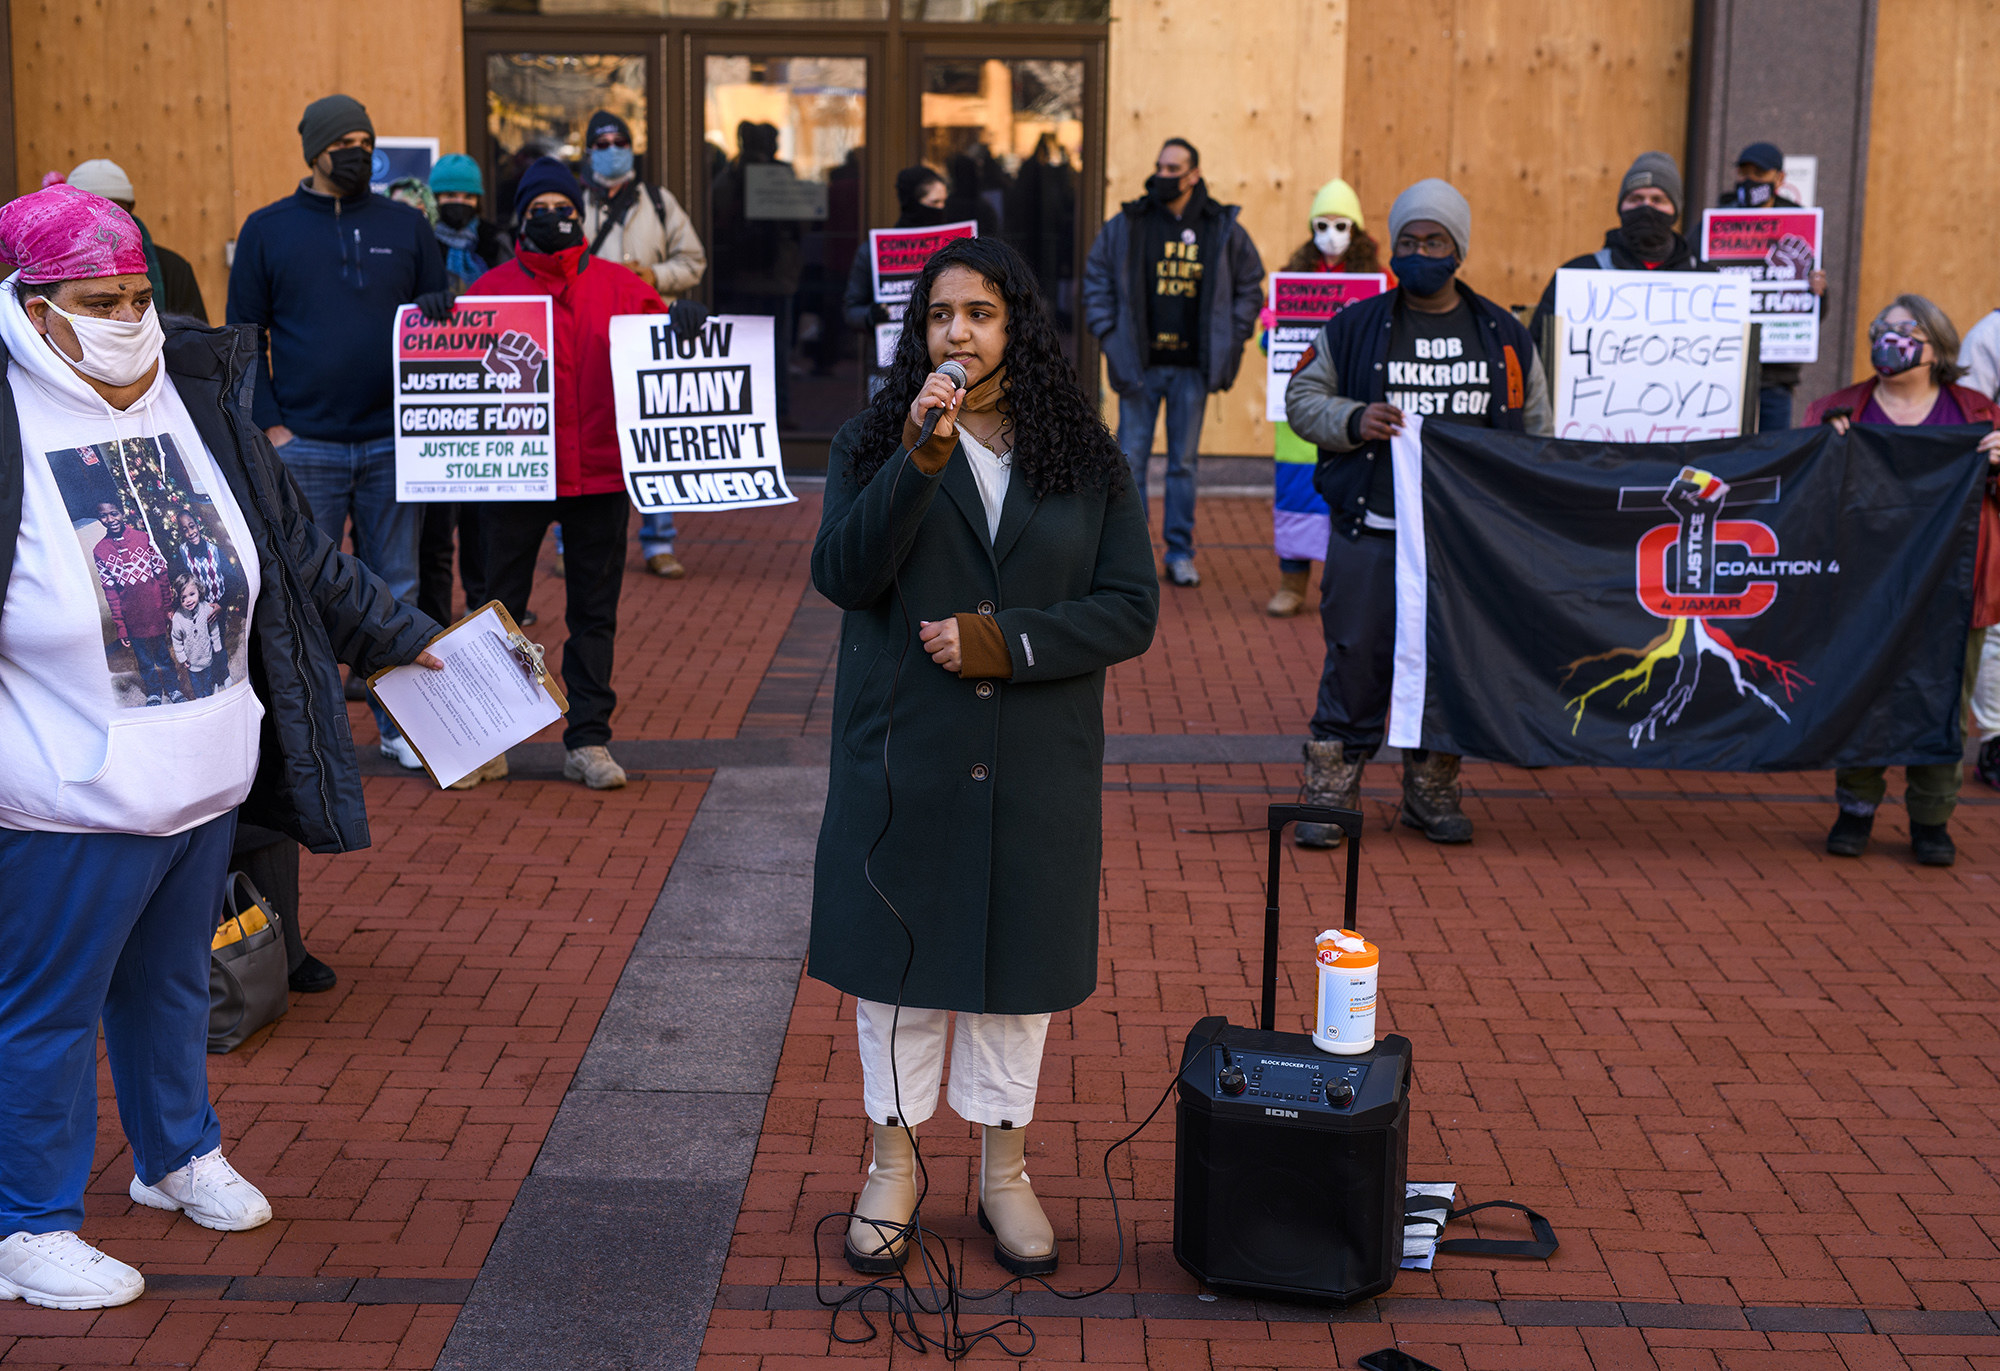 A person speaks into a microphone among a crowd of demonstrators at the government center